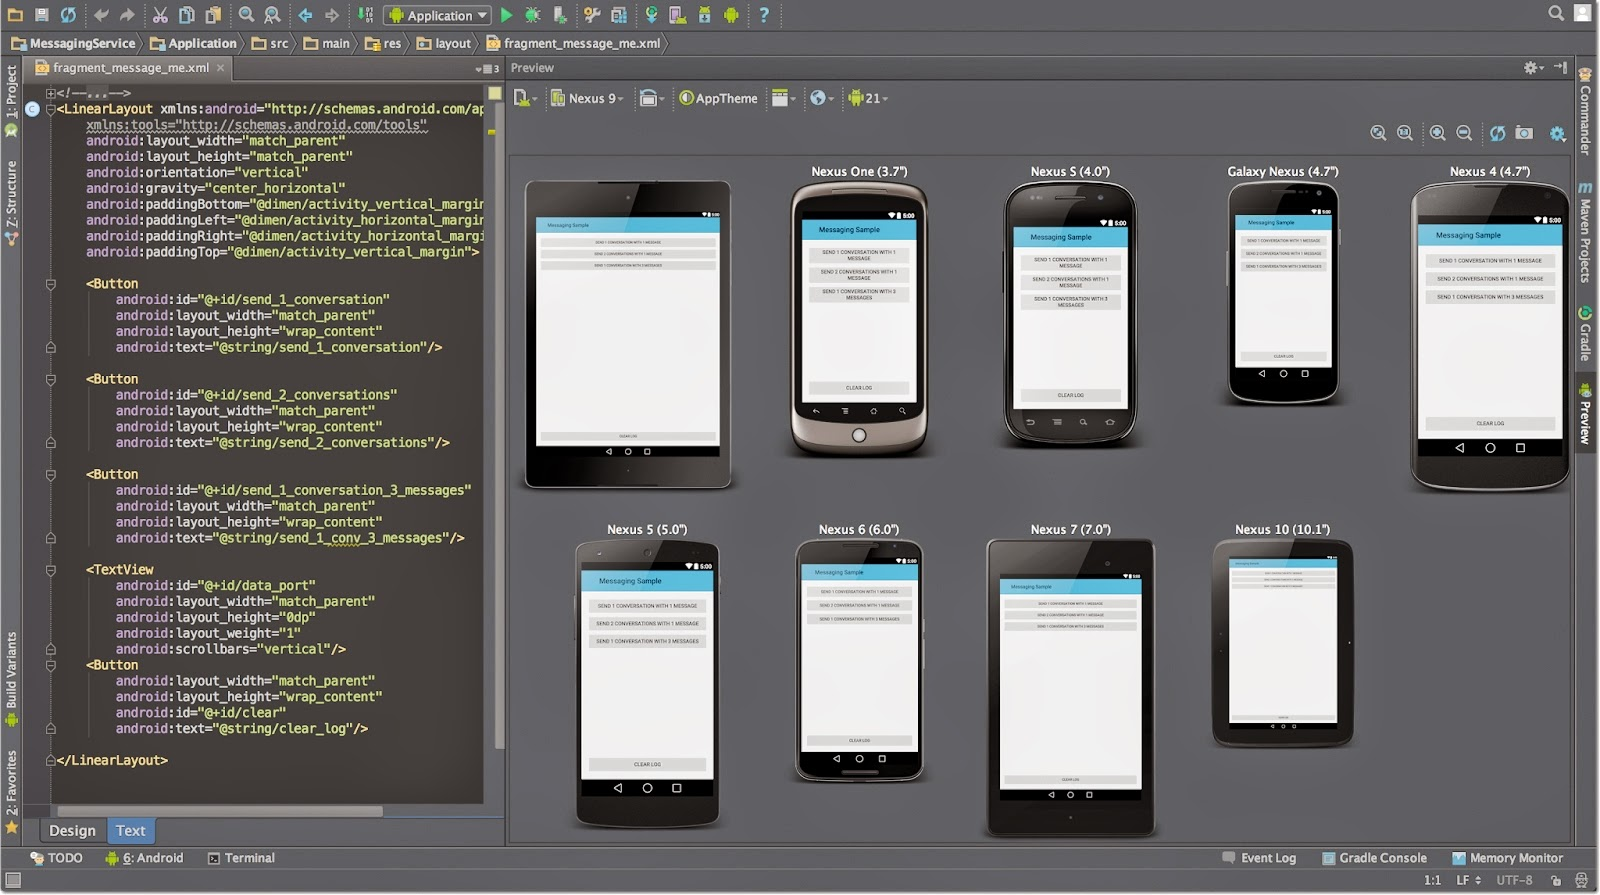 Android Studio - The official Android IDE